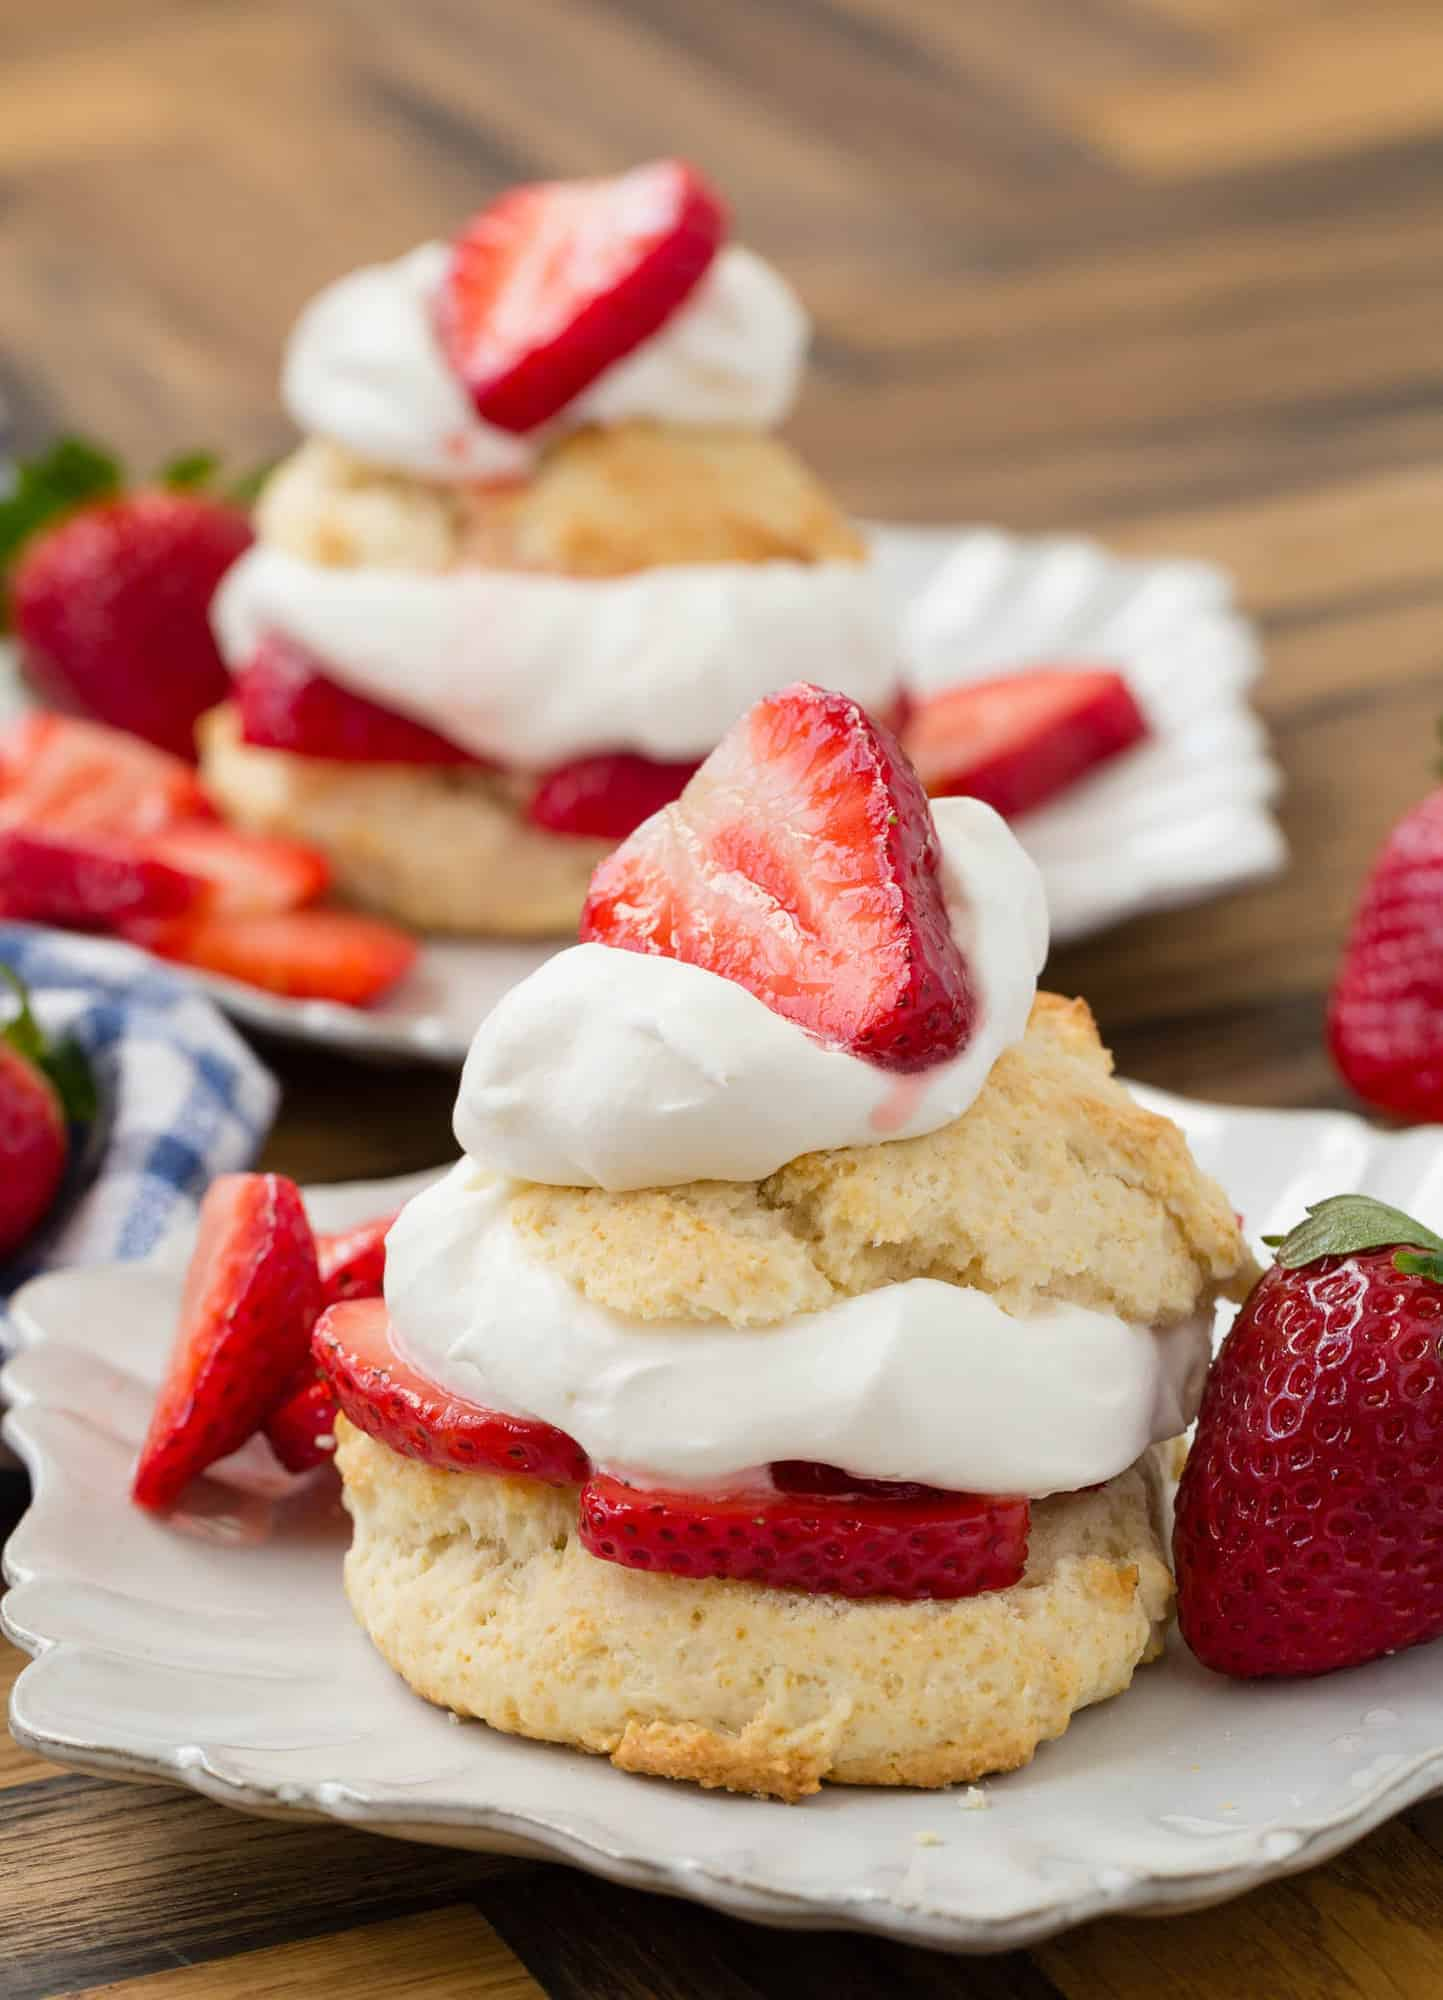 Decorative white plate with strawberry shortcake on it, topped with whipped cream and strawberries.